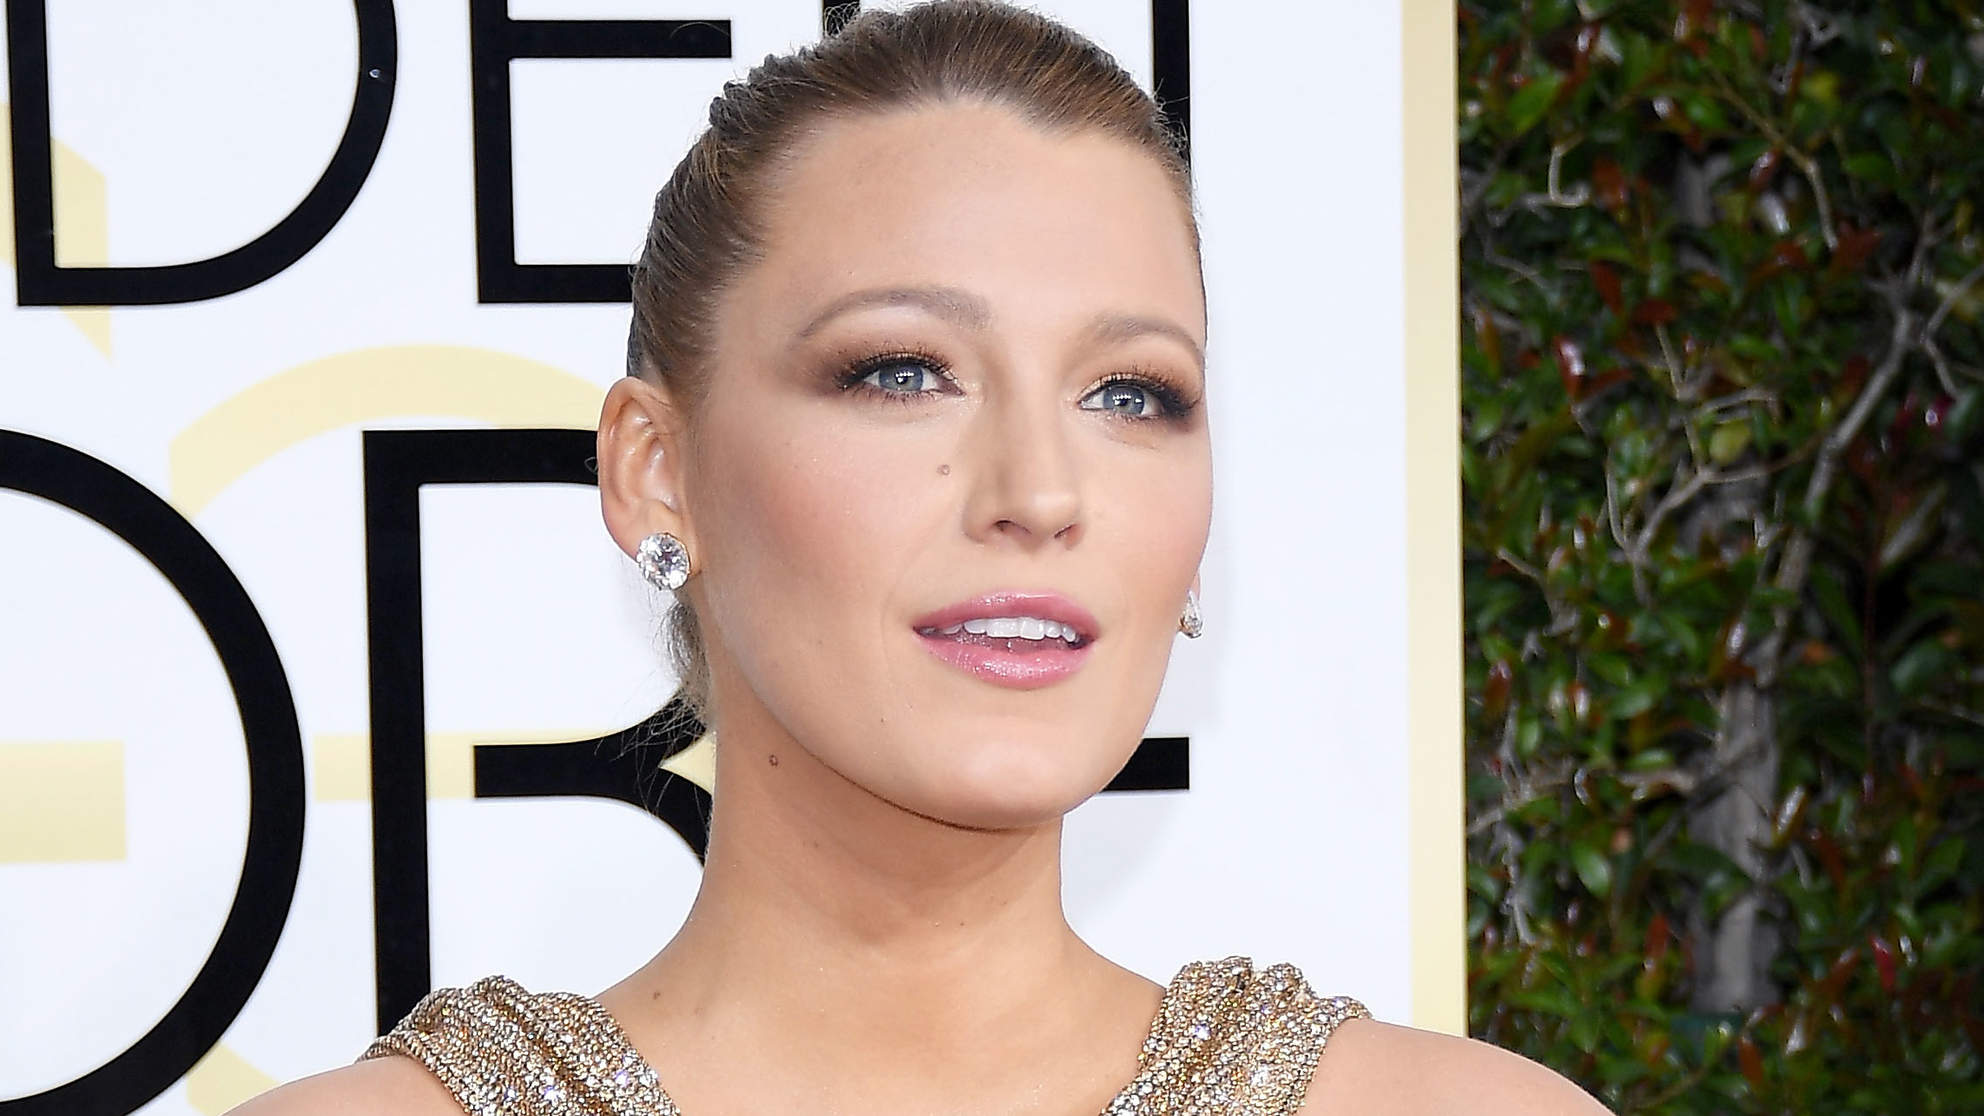 Blake Lively Trades in Blonde Hair for Cropped Black 'Do While Filming Upcoming Thriller